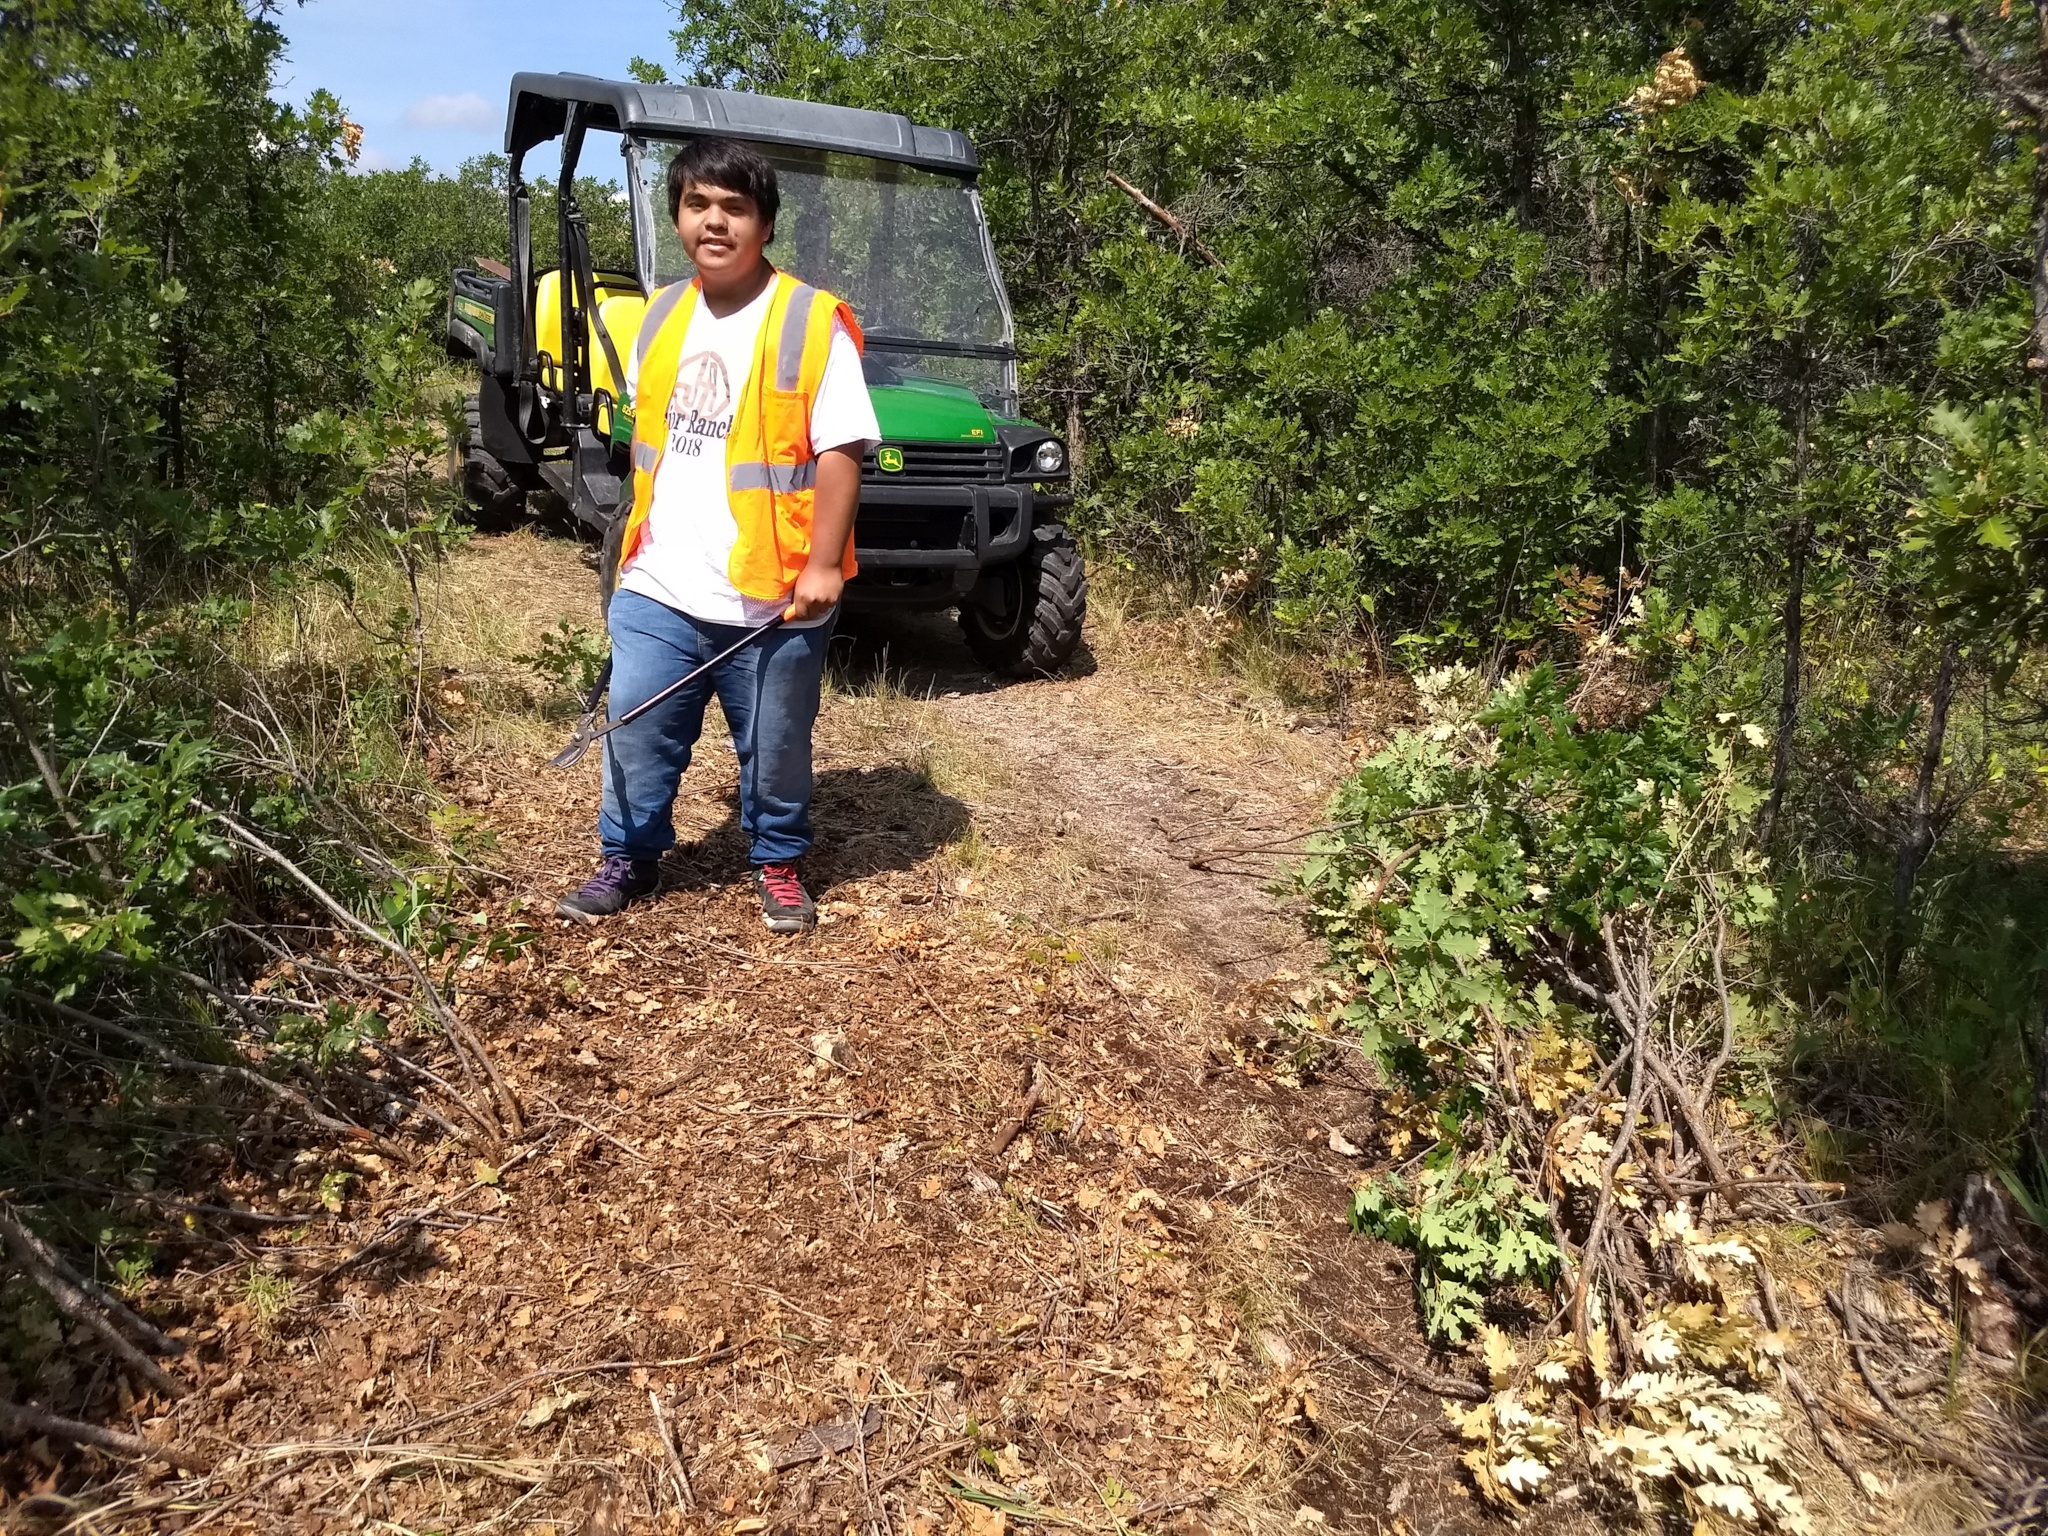 Jose groomed some of trails during inspection so the teams wouldn't have to come back to do it themselves!